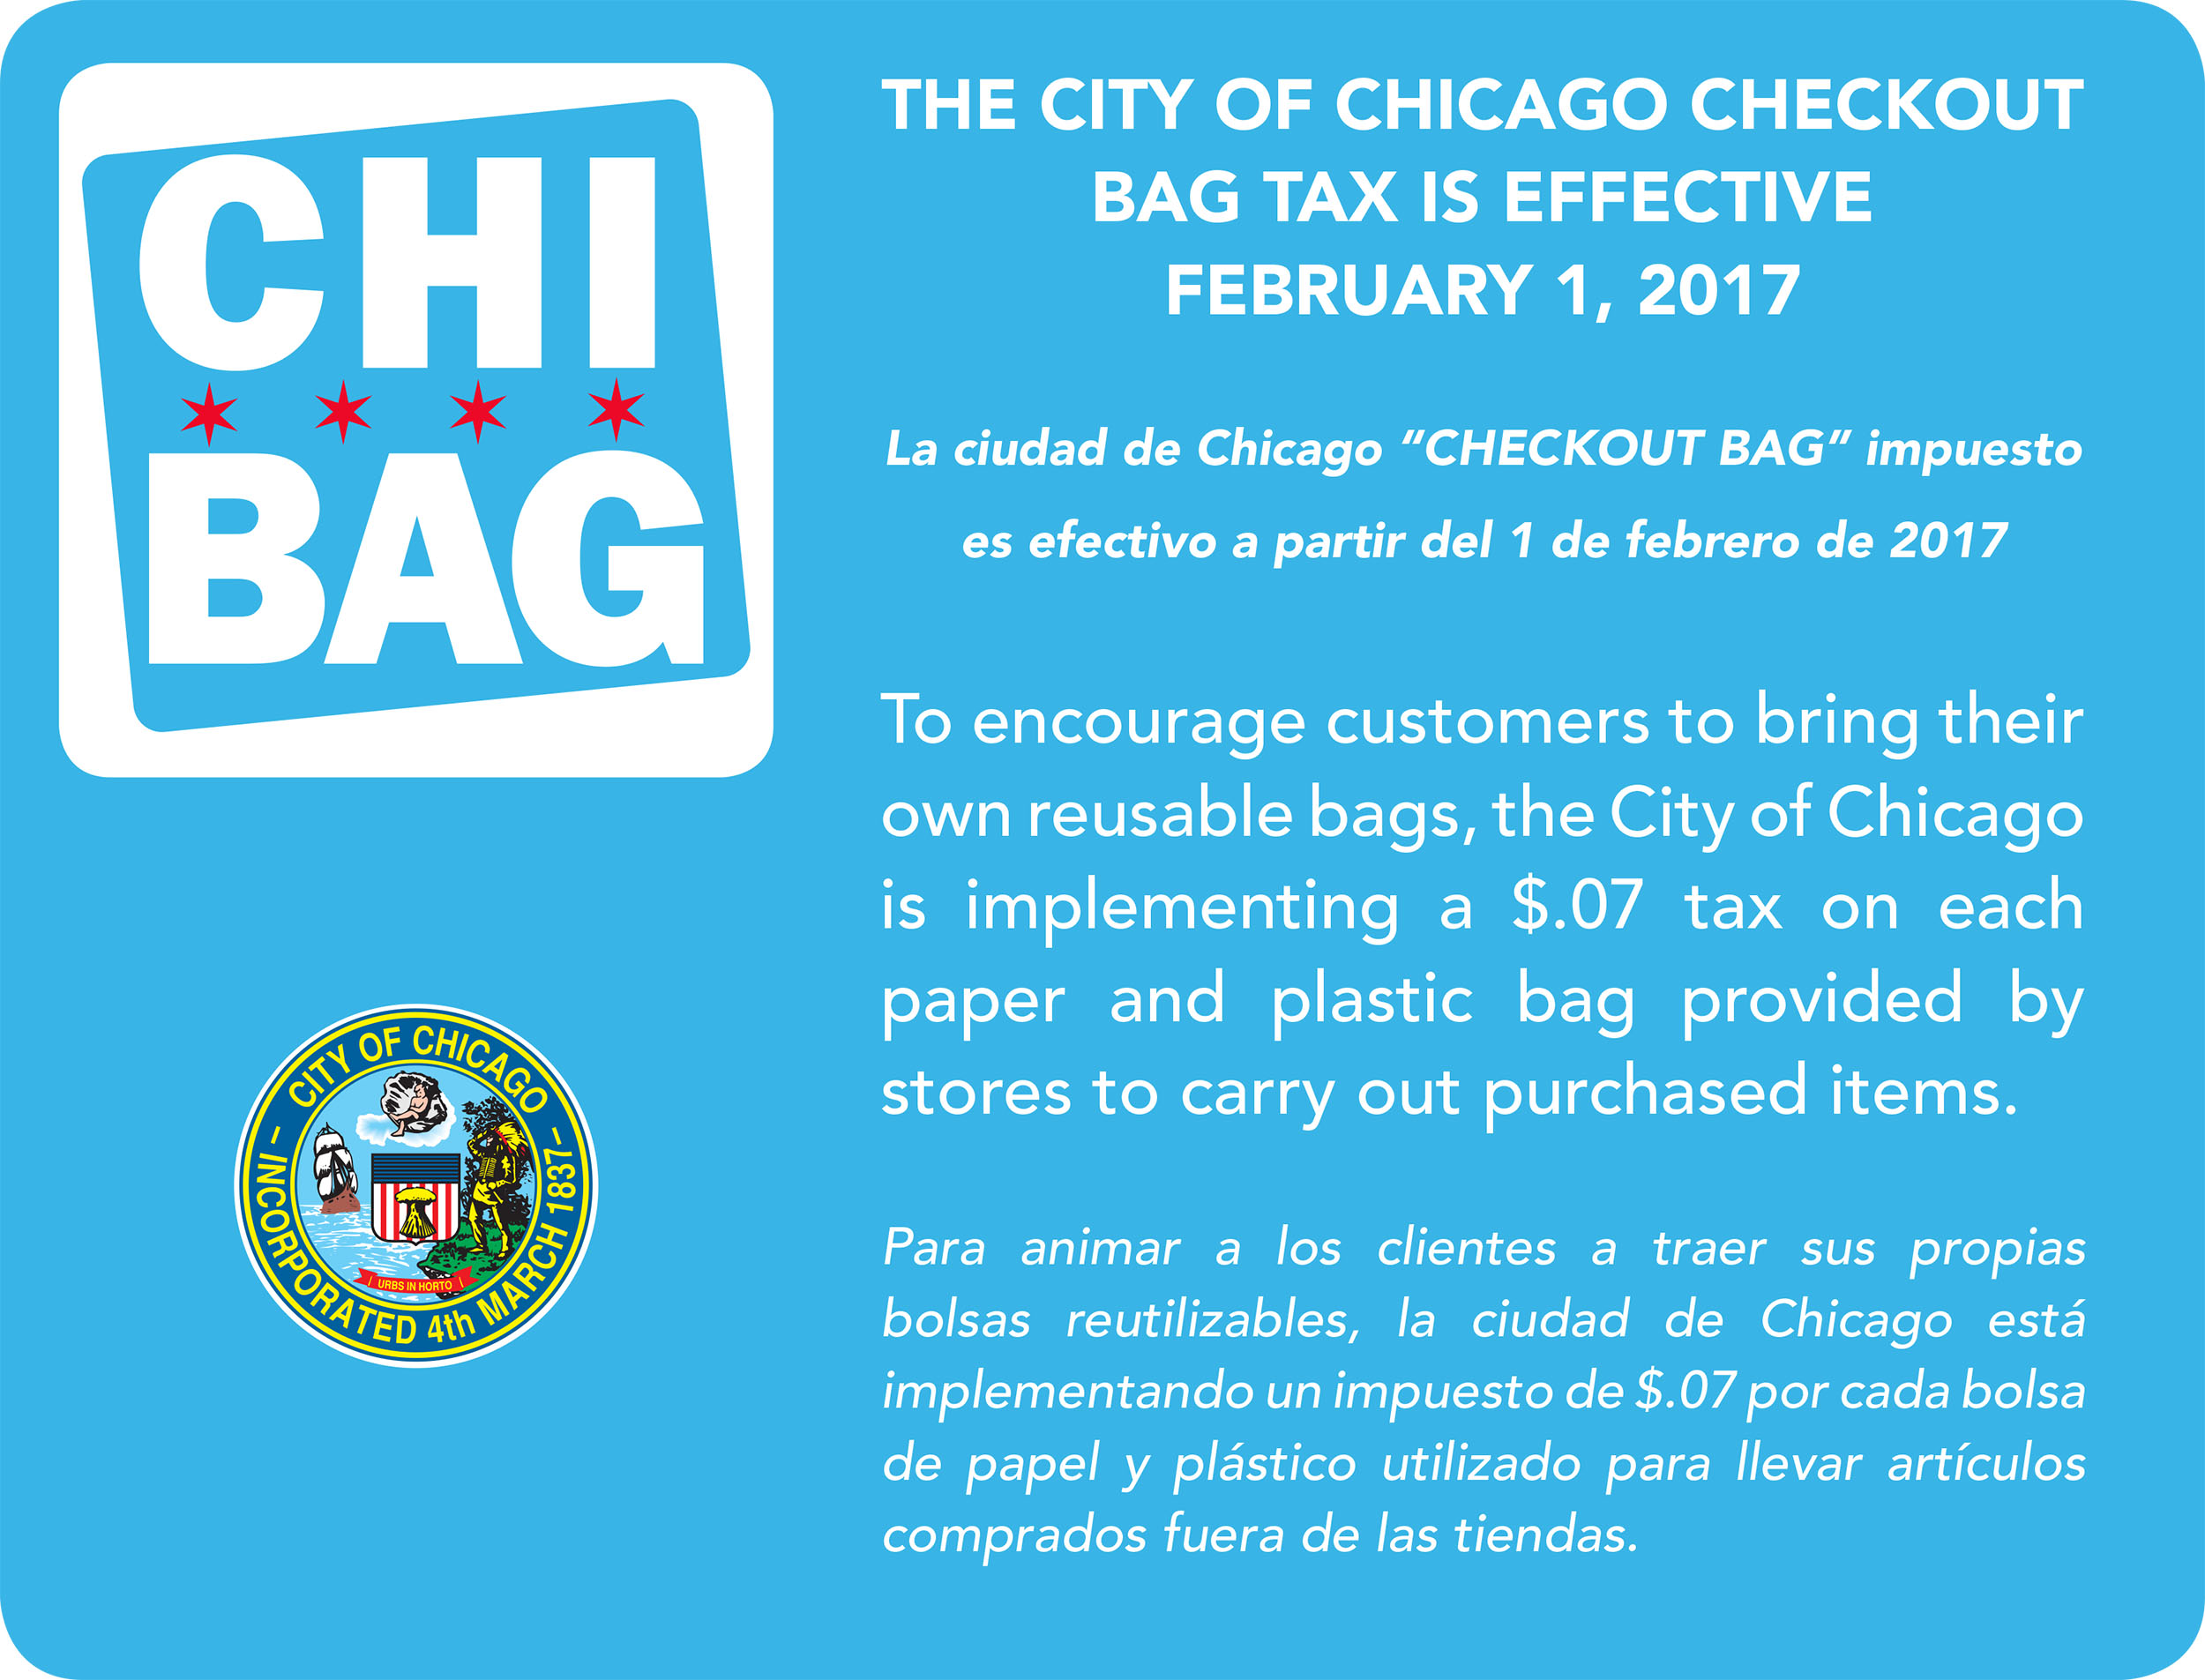 Plastic bag ban chicago - Click To Enlarge Image Of City Placard Detailing Checkout Bag Tax